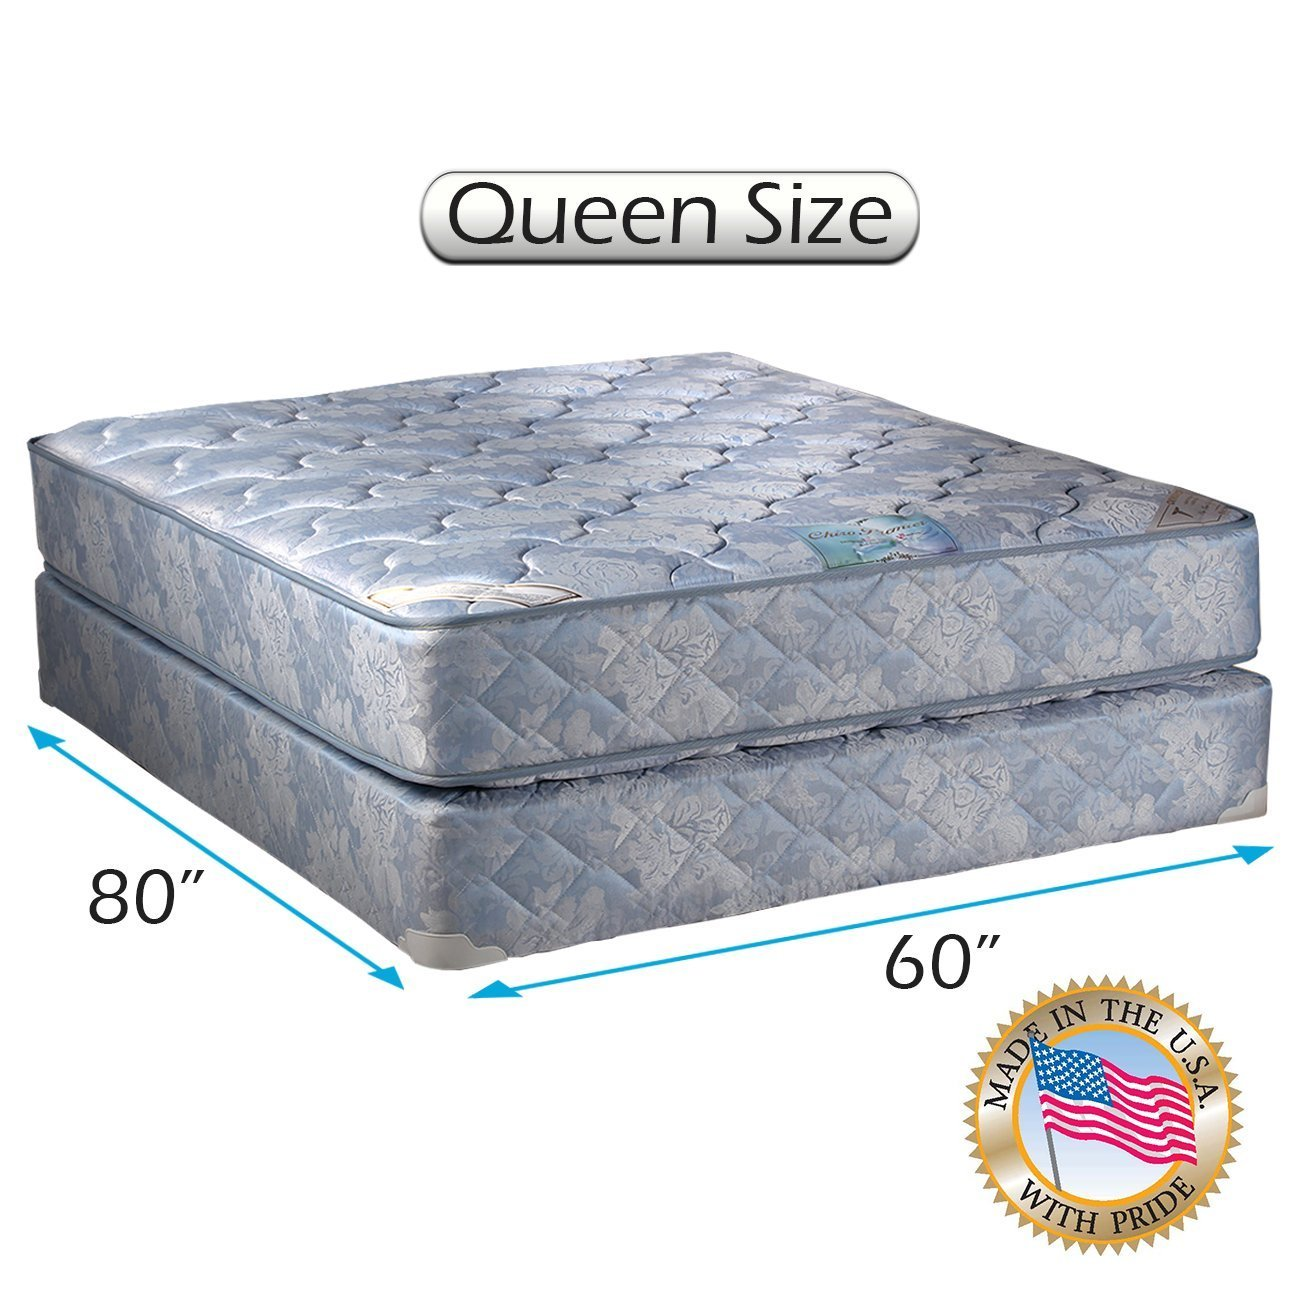 Dream Sleep Chiro Premier (Blue) 2-Sided Queen Mattress Set with Mattress Cover Protector Included - Quality Foam, Fully Assembled, Spine Support, Long Lasting by Dream Solutions USA by Dream Solutions USA